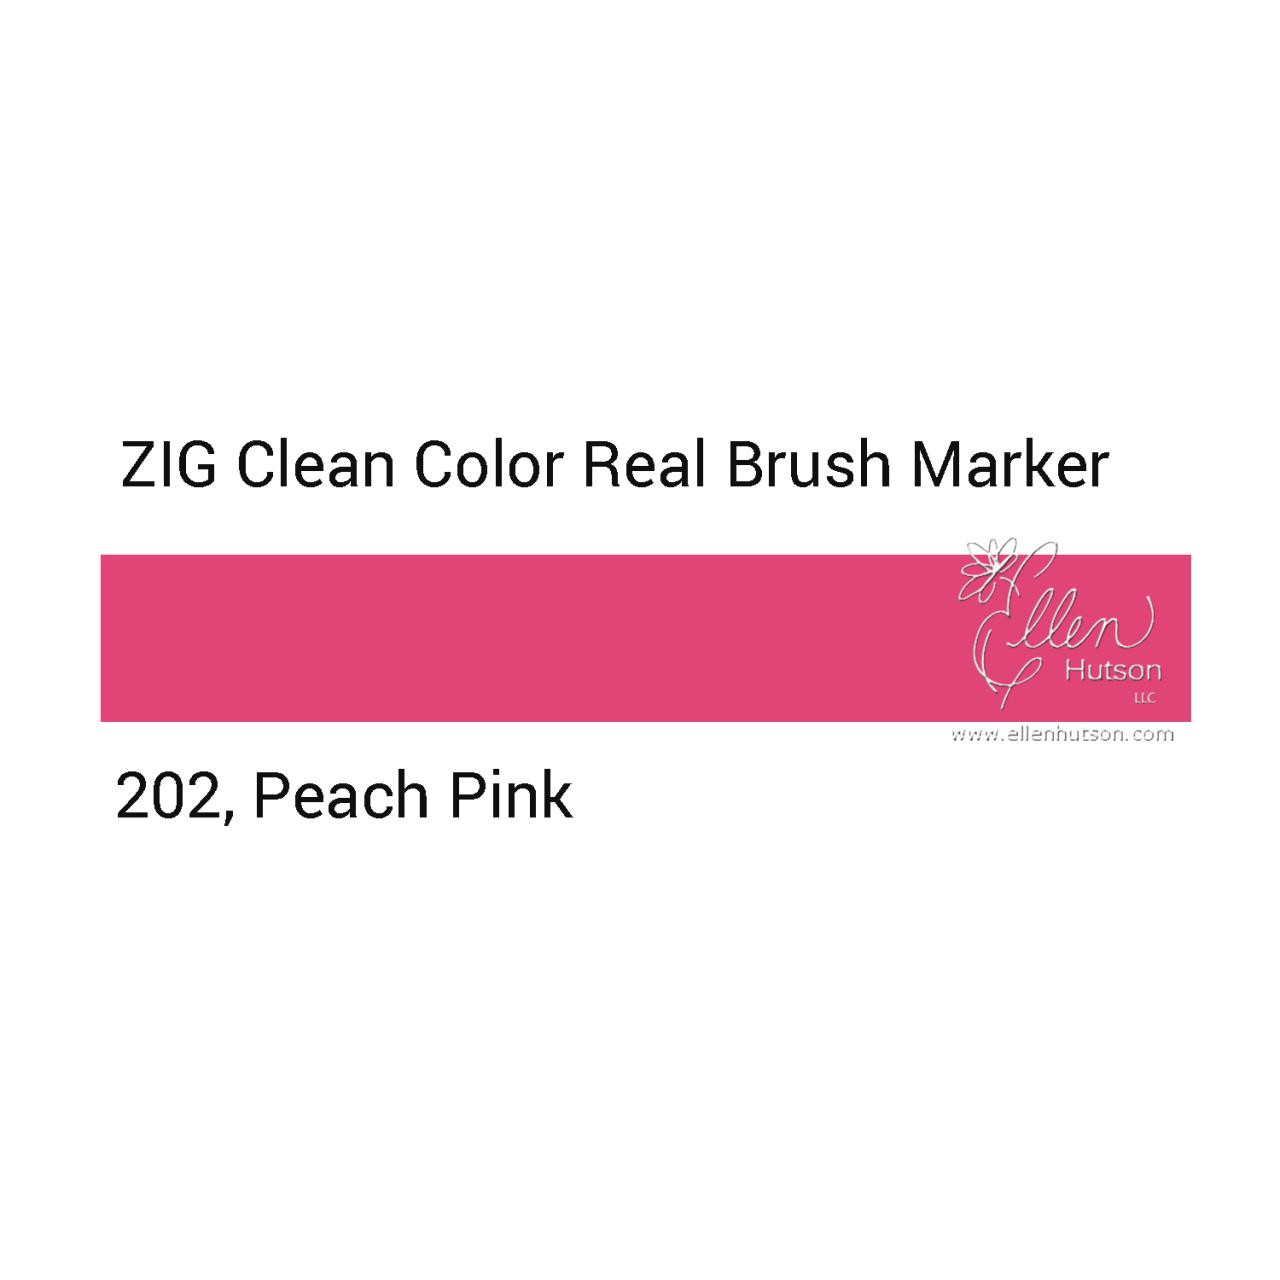 202 - Peach Pink, ZIG Clean Color Real Brush Marker -